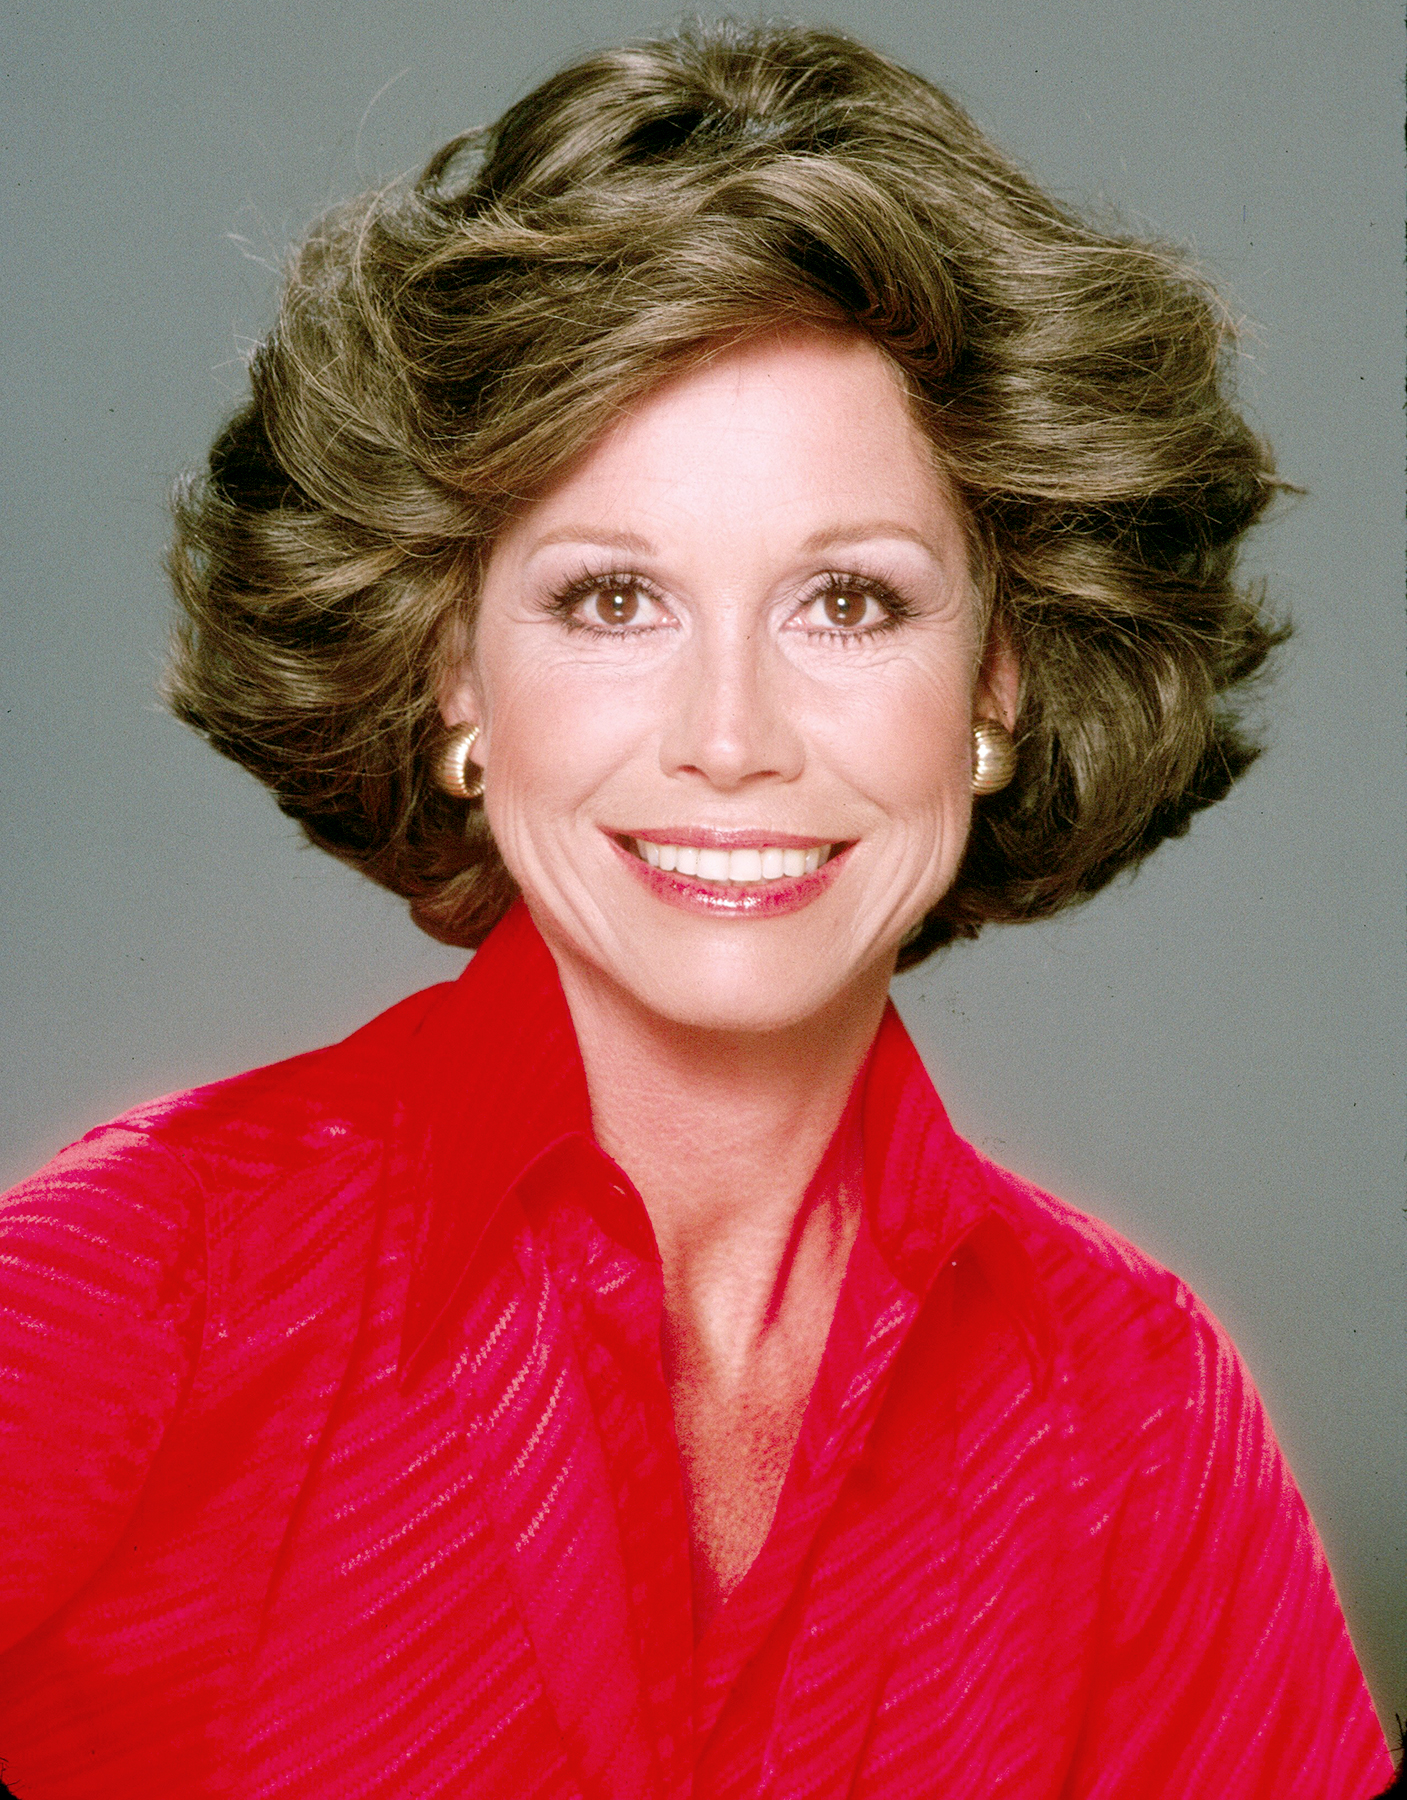 Mary Tyler Moore poses for a portrait in 1978 in Los Angeles, California.